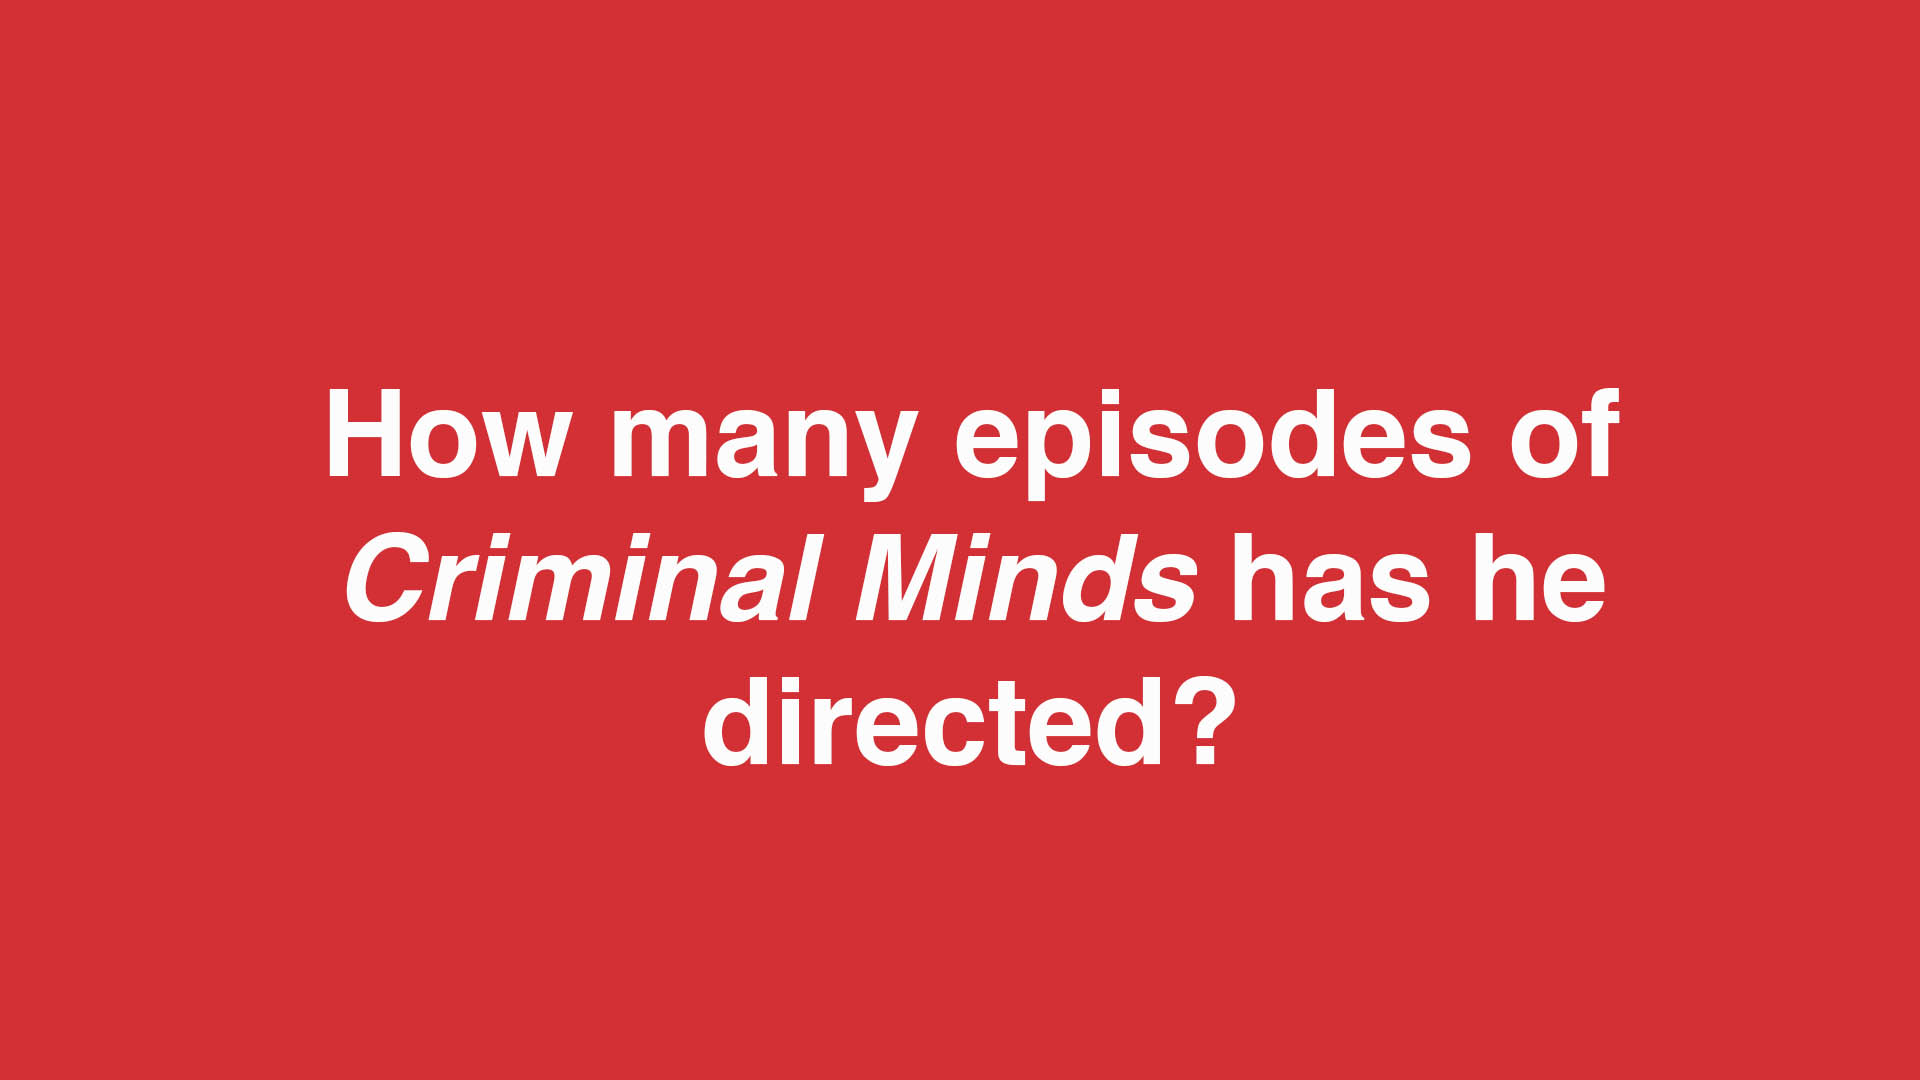 How many episodes of Criminal Minds has he directed?